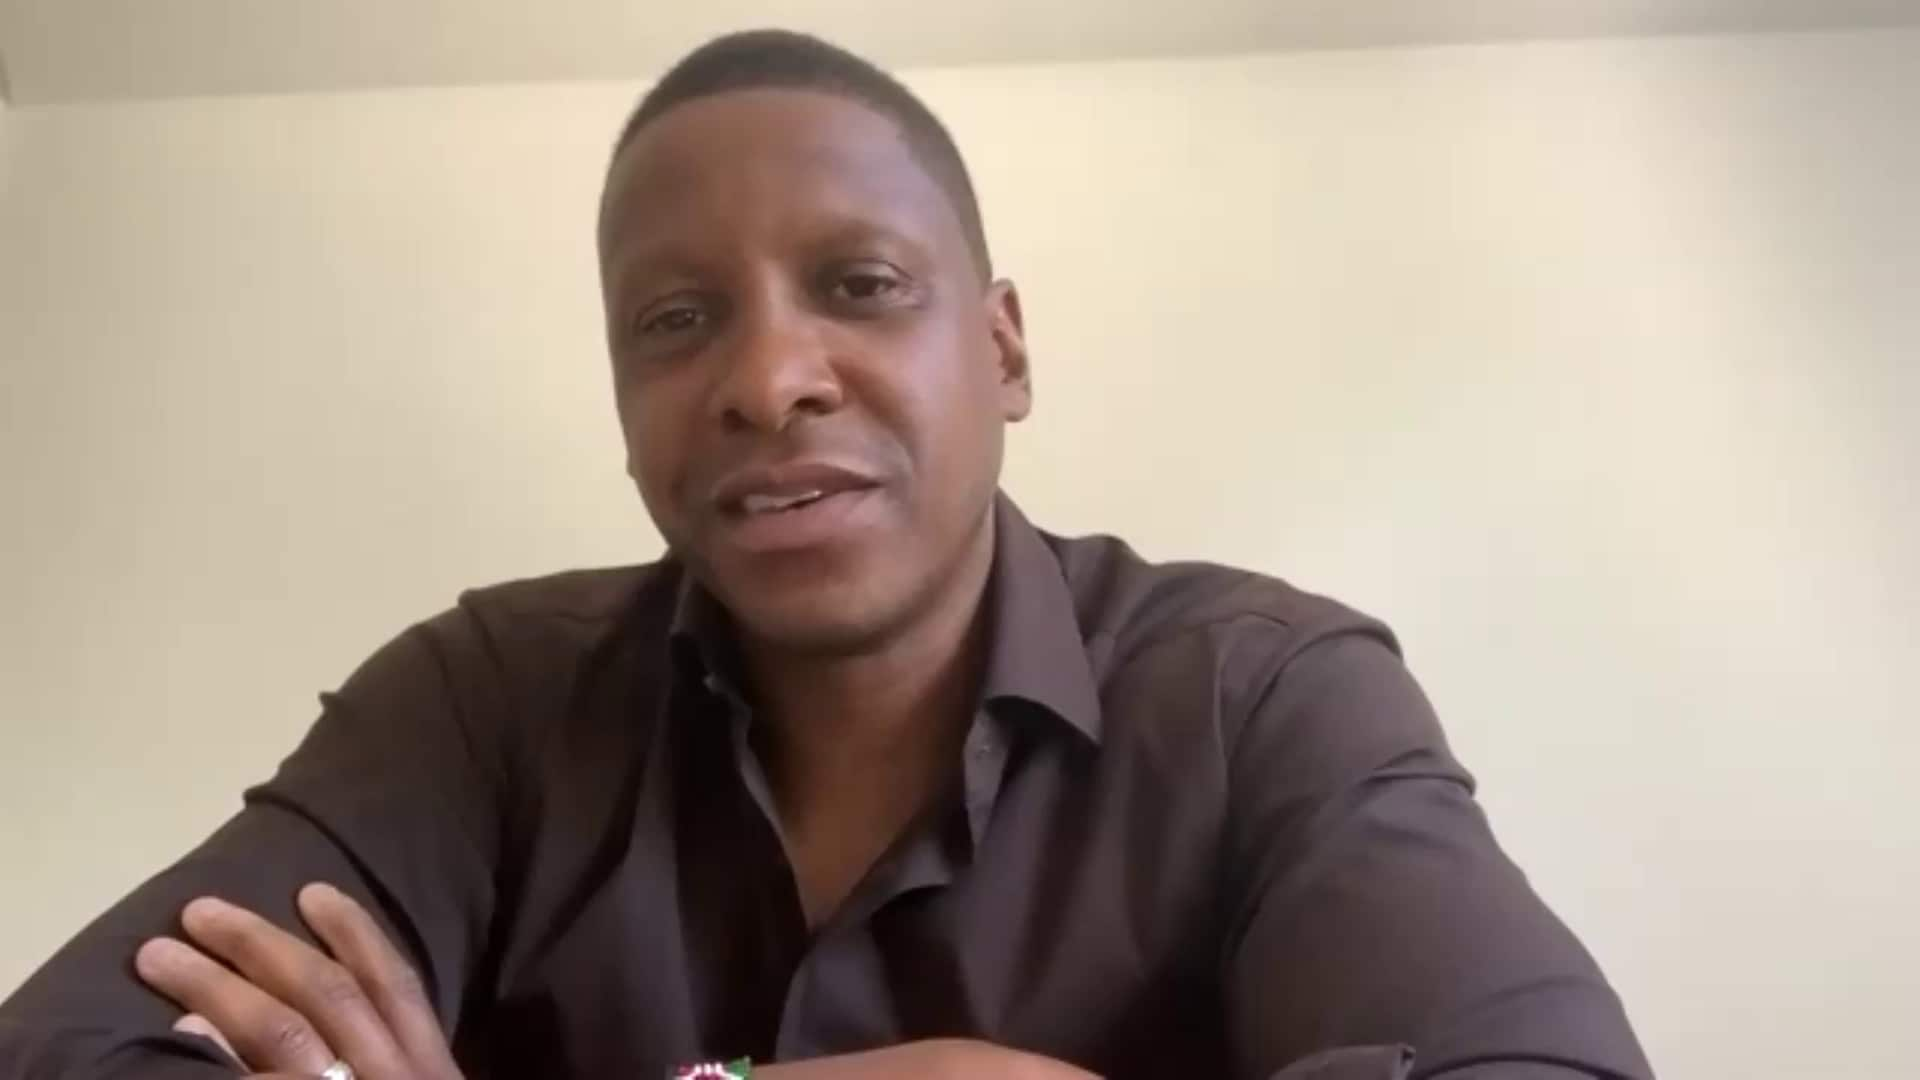 Fort Myers: Masai Ujiri - June 29, 2020